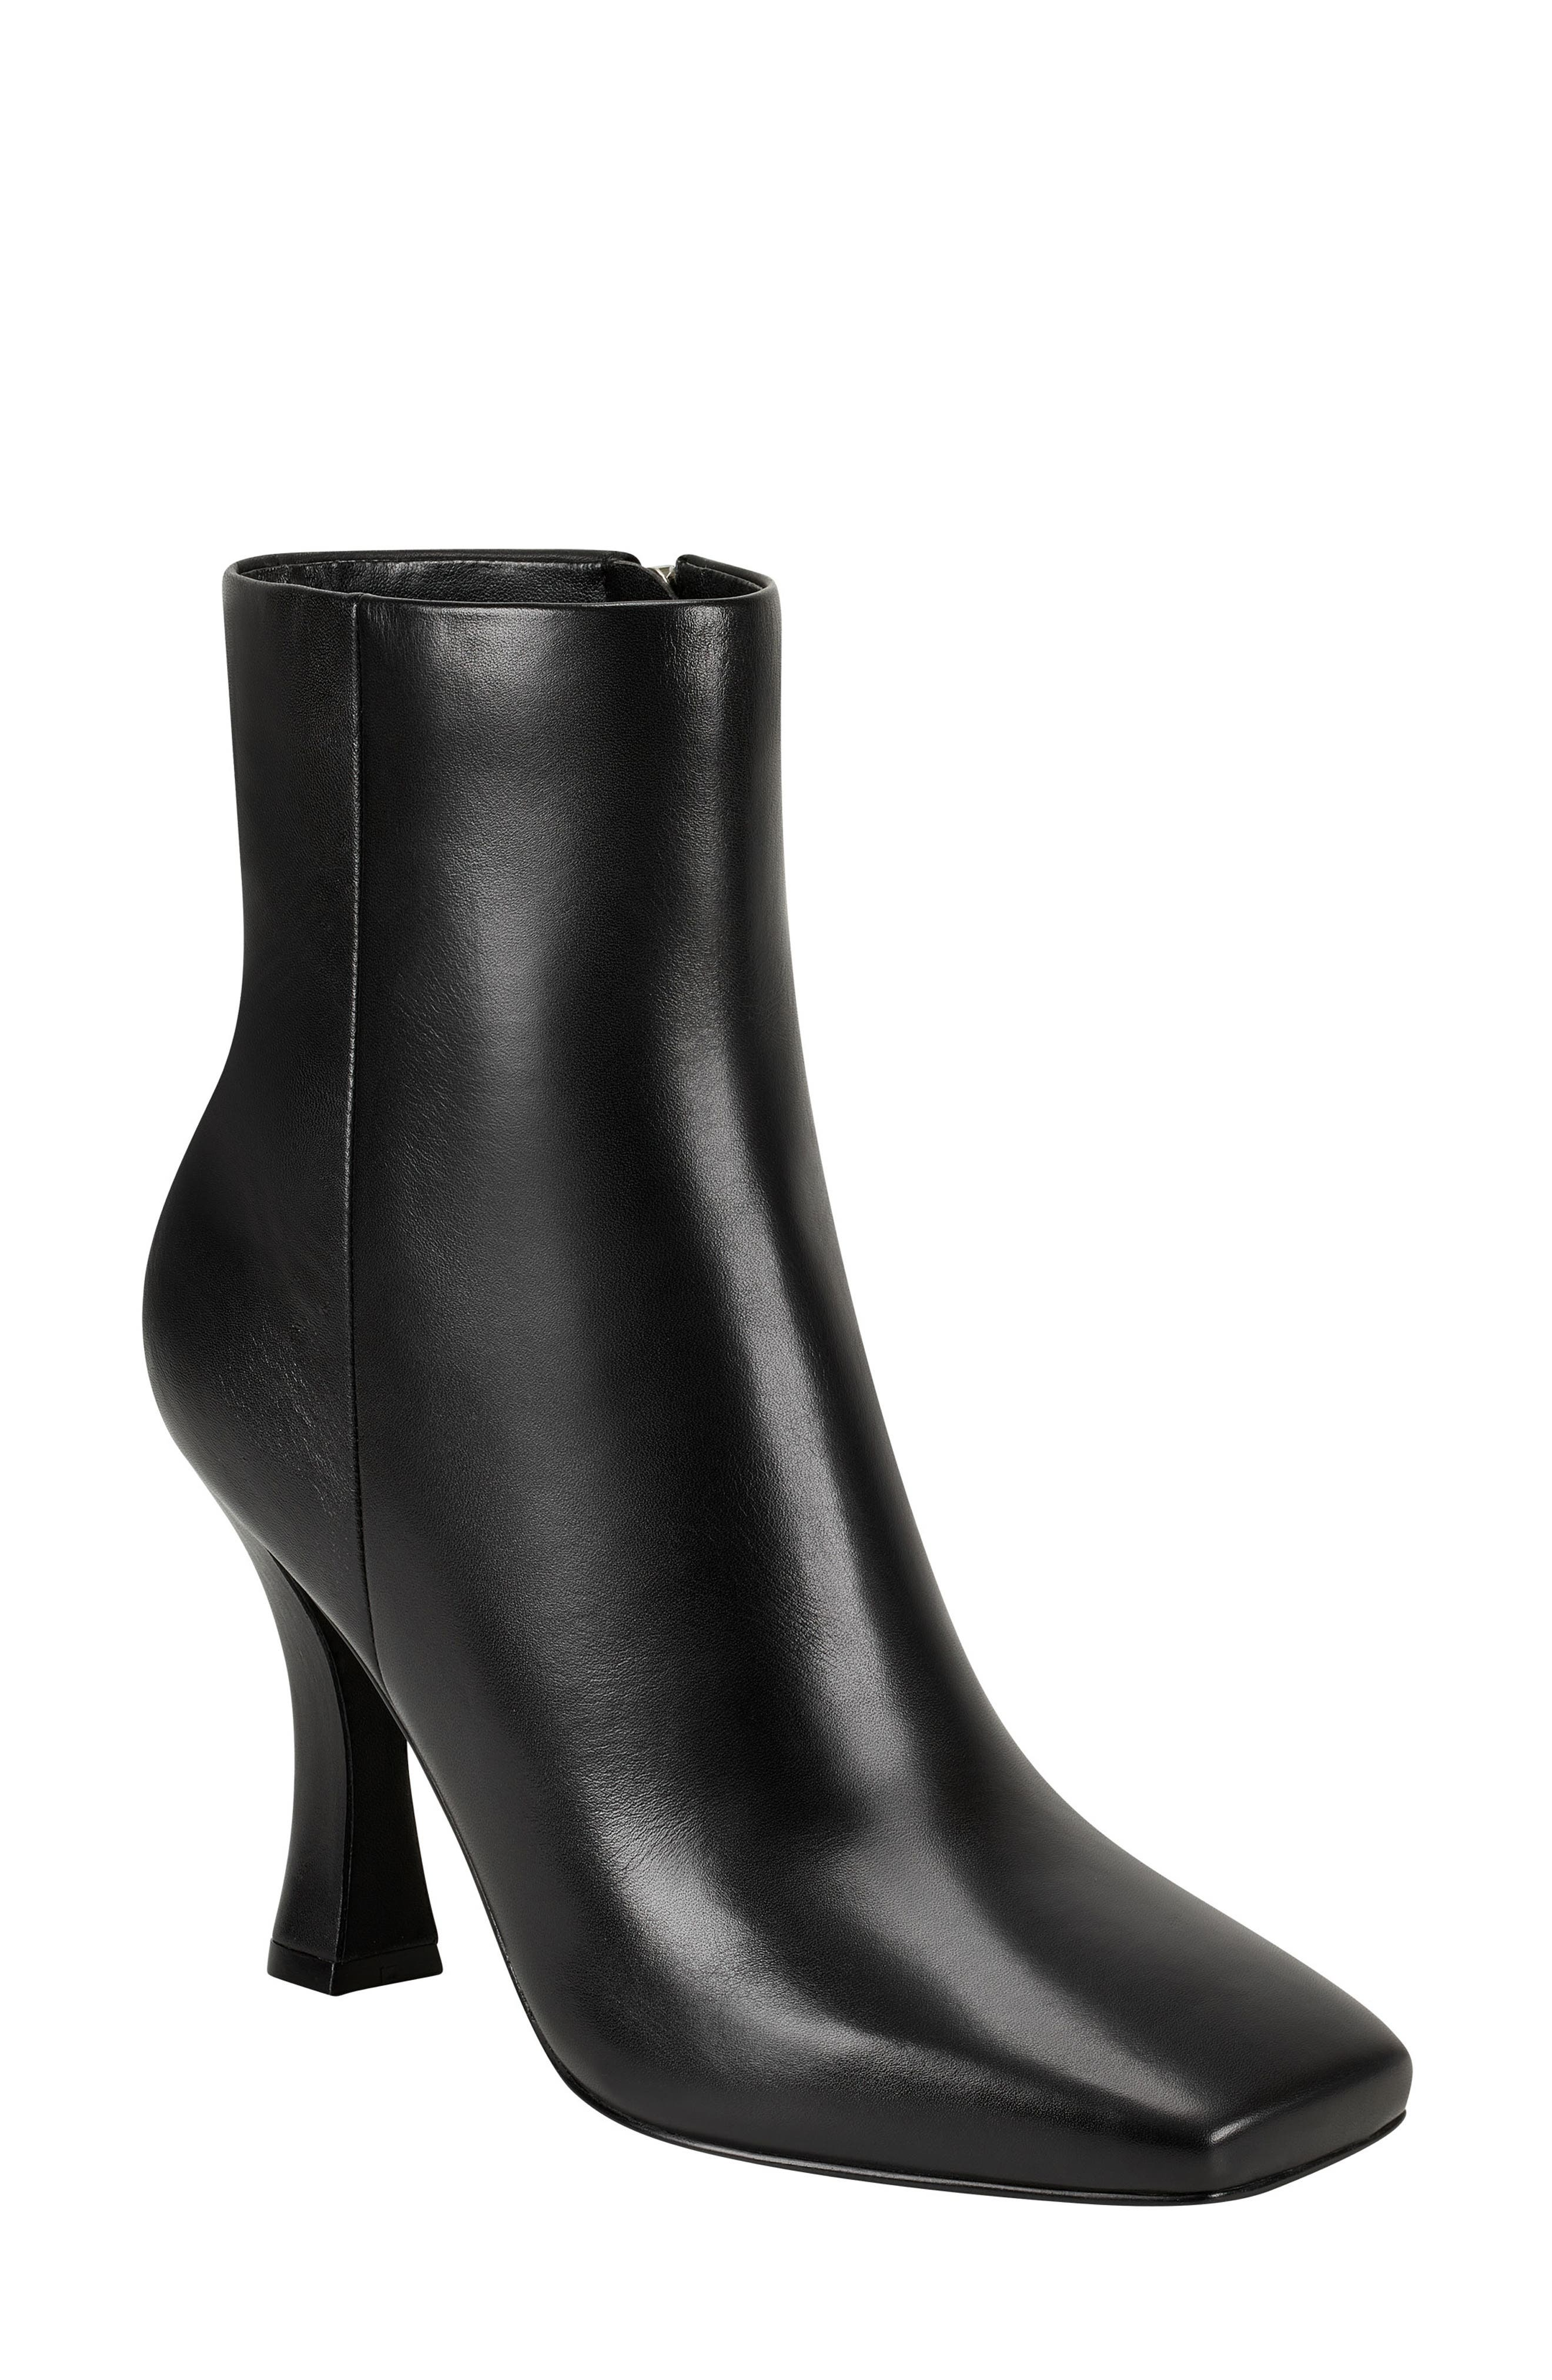 Marc Fisher Suede Ankle Boots 5M Women's BLACK NWD